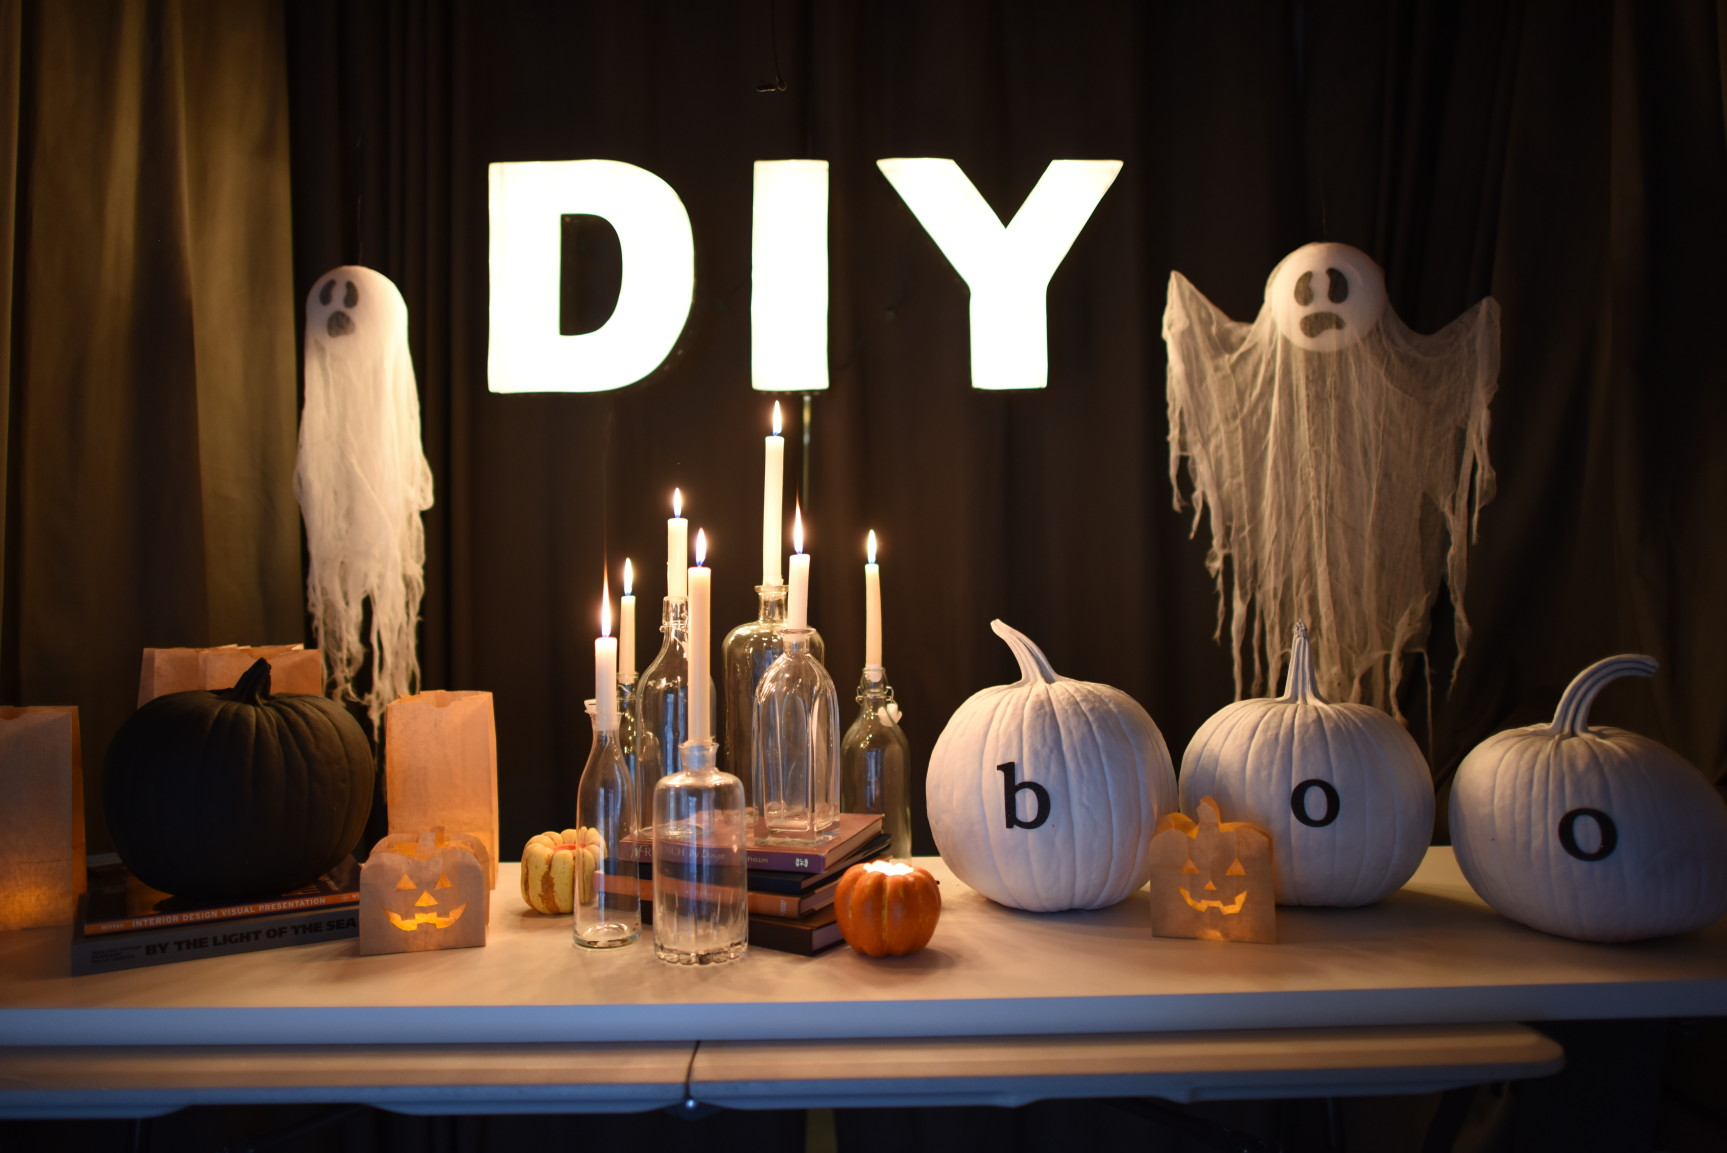 5 Easy Creepy Yet Classy Halloween Party Decorations On A Budget San Diego Interior Designers